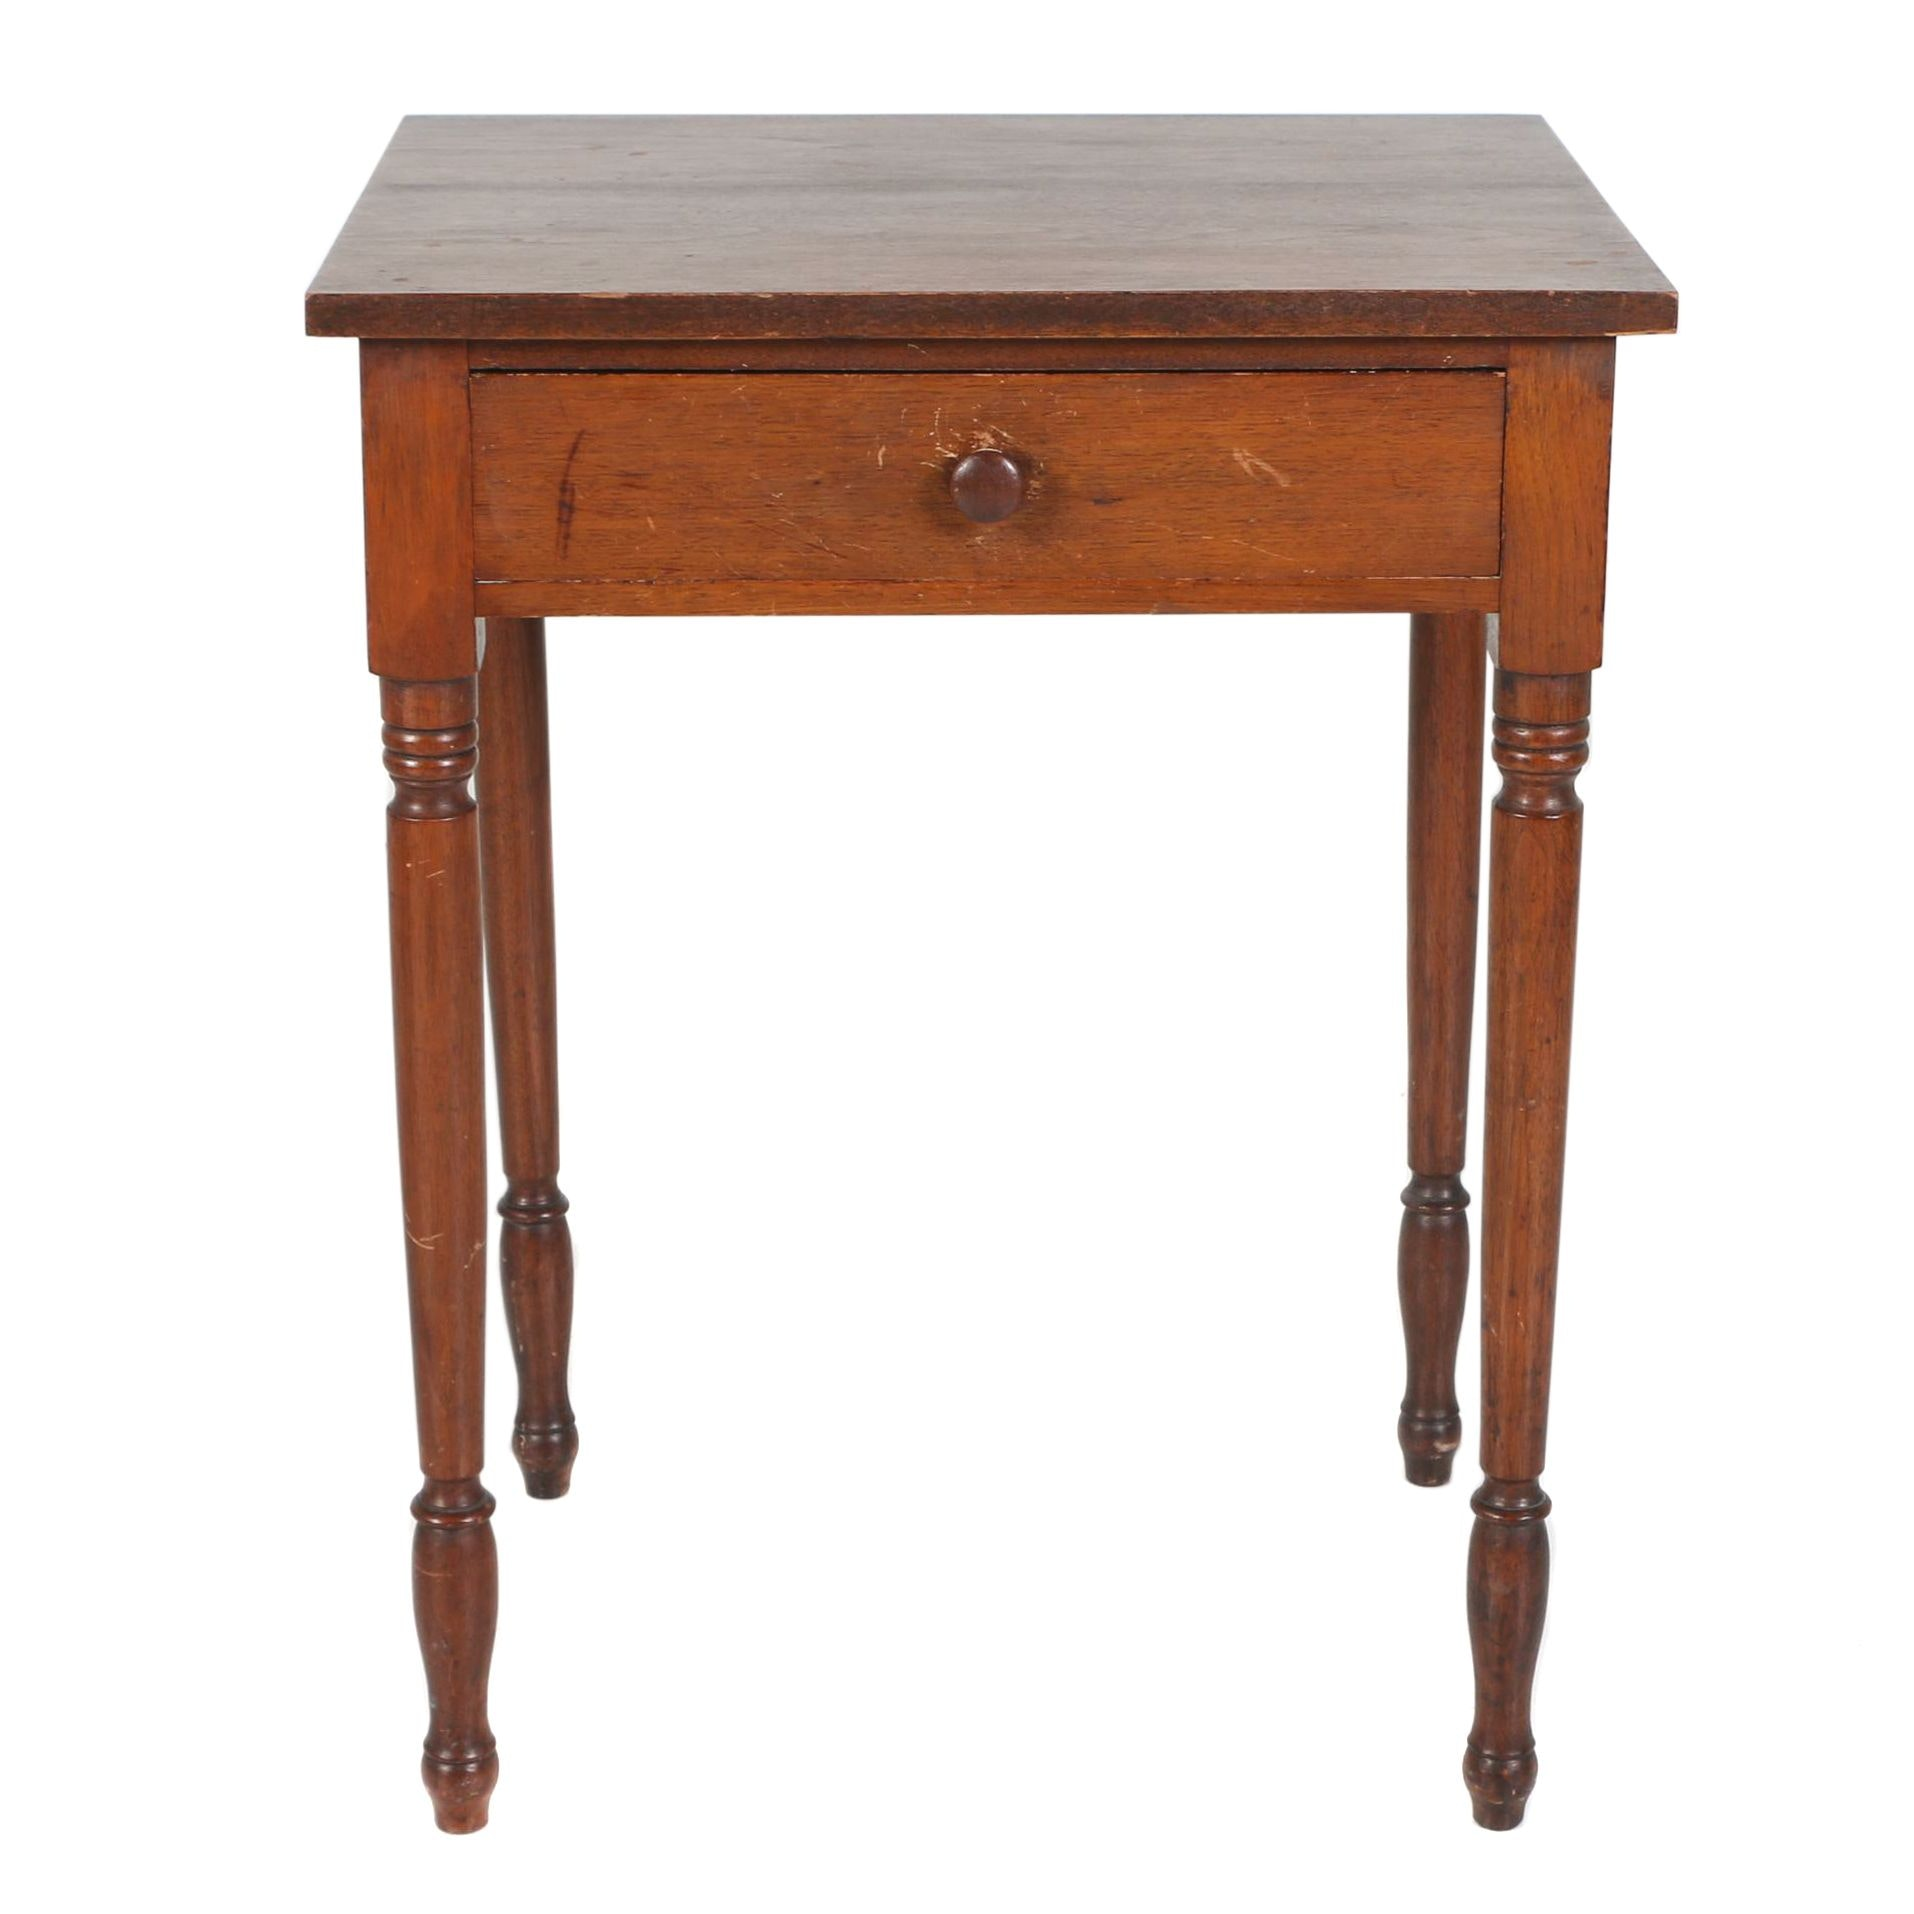 American Walnut One-Drawer Side Table, 19th Century